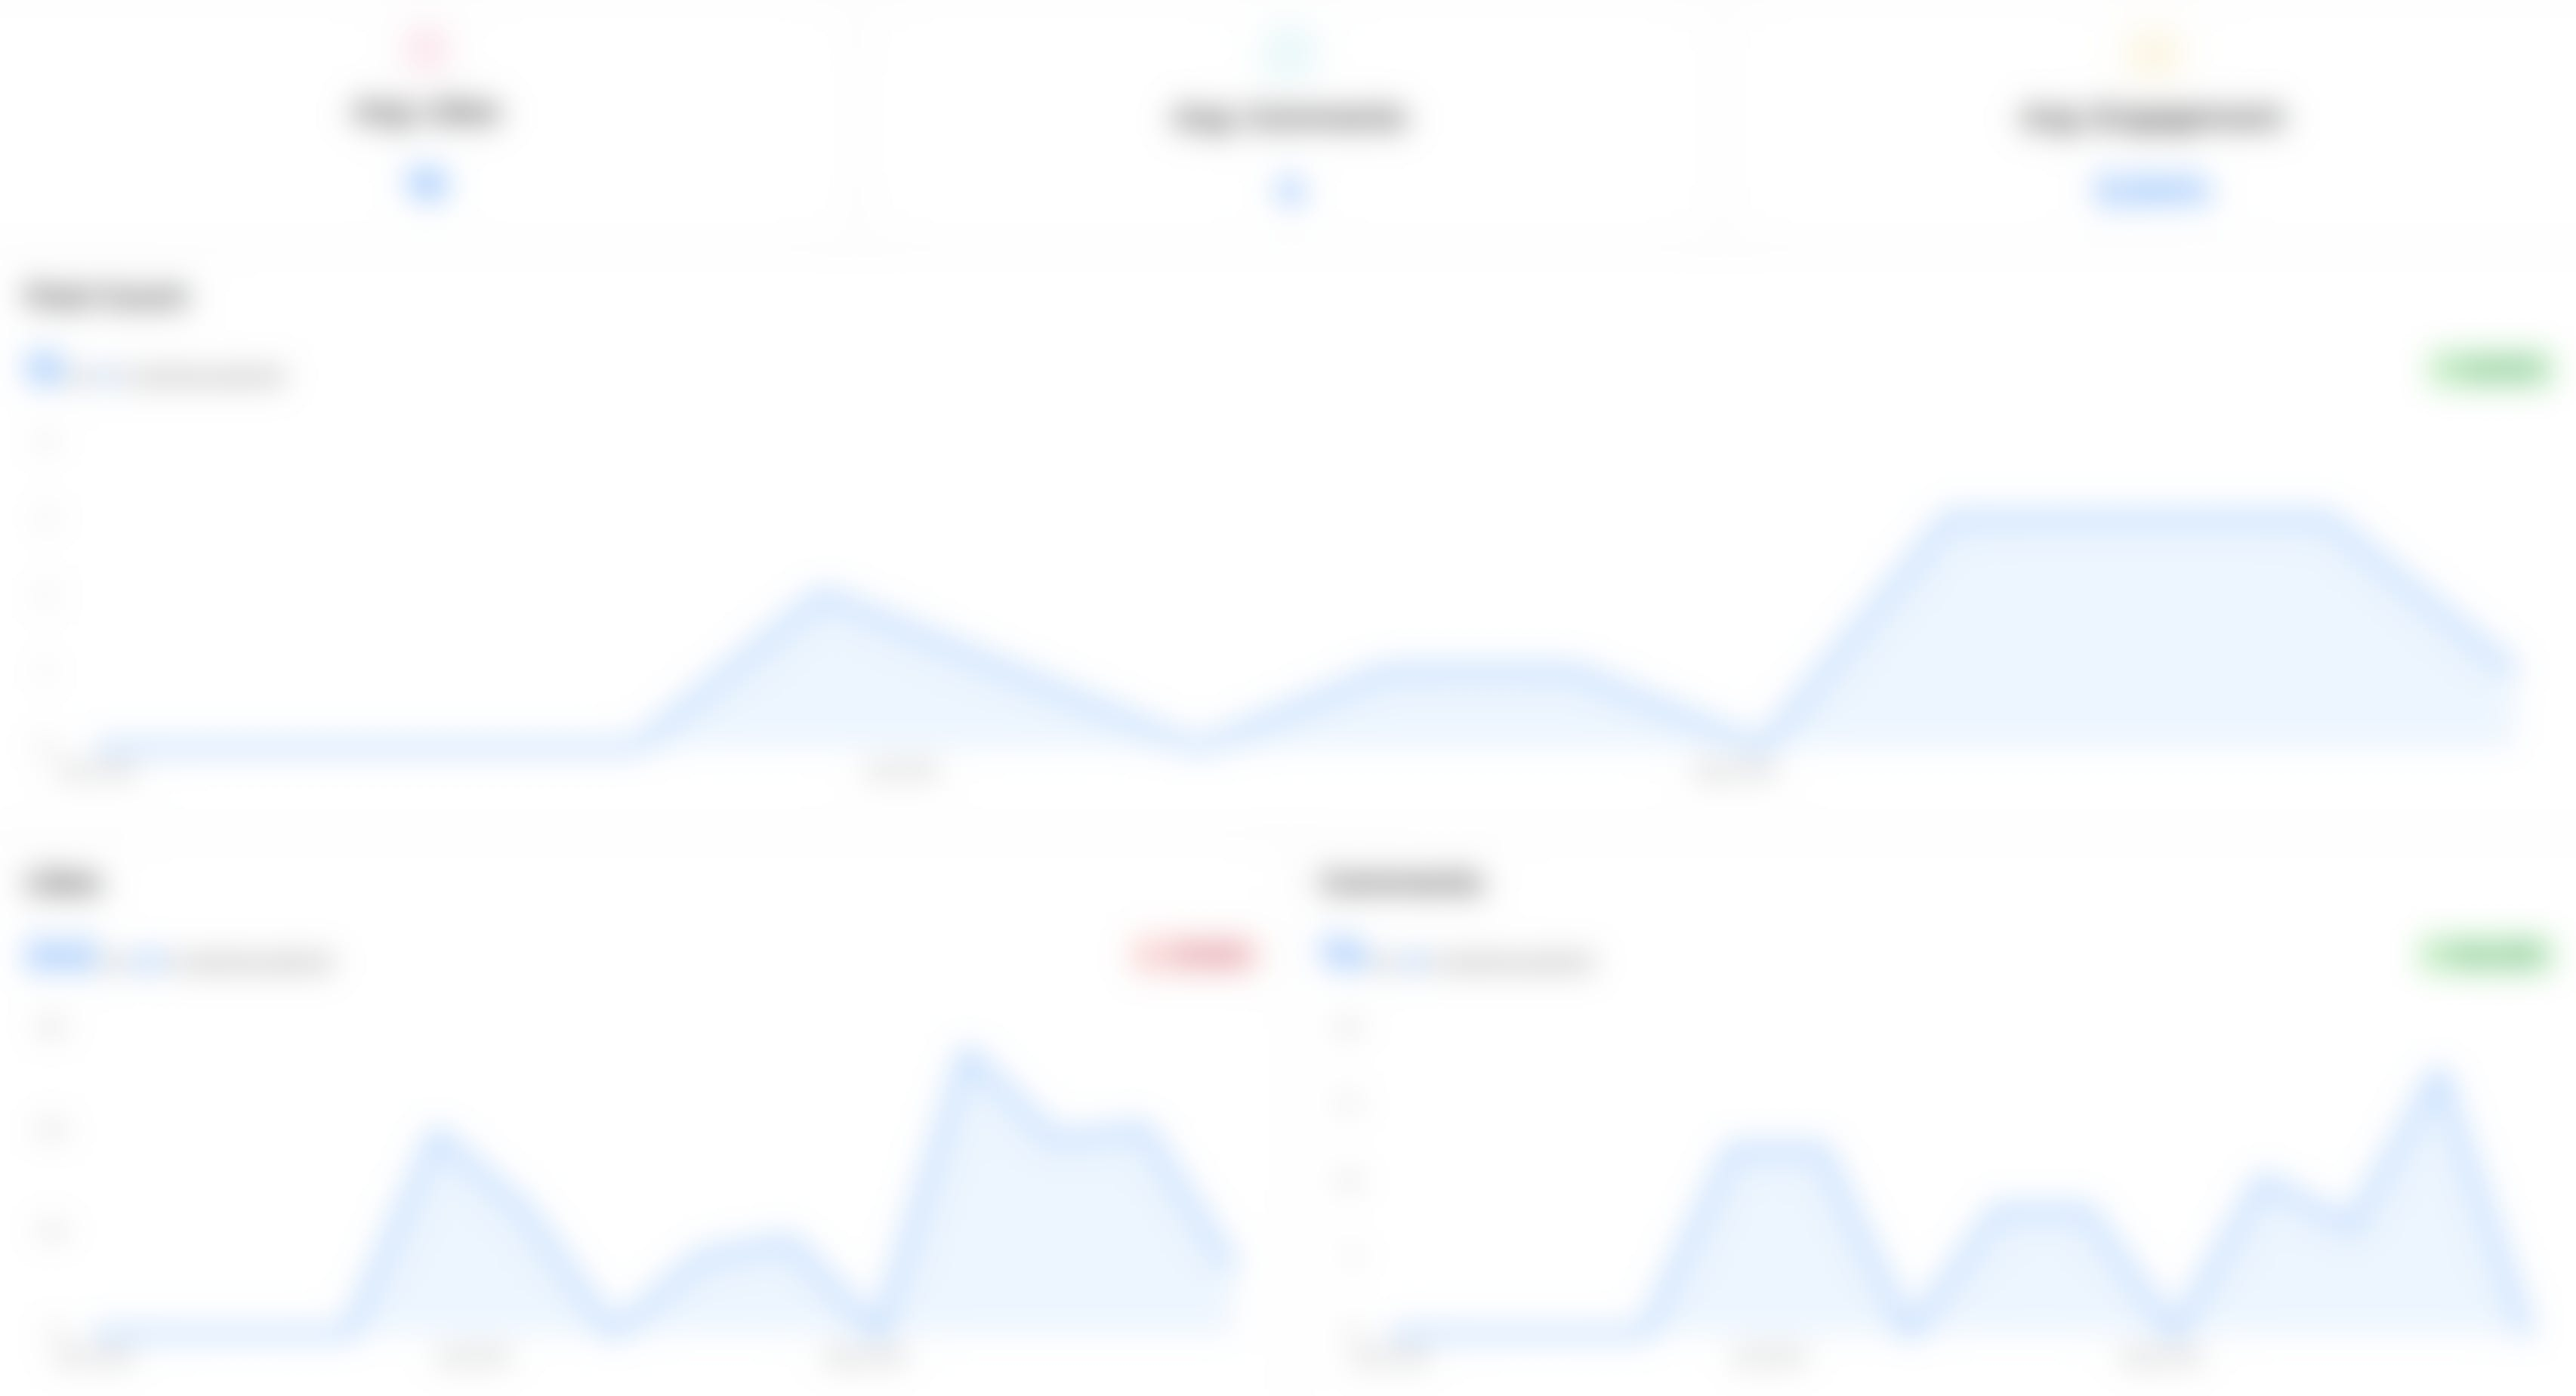 Post analytics for your Instagram business profile, in sharemyinsights.com